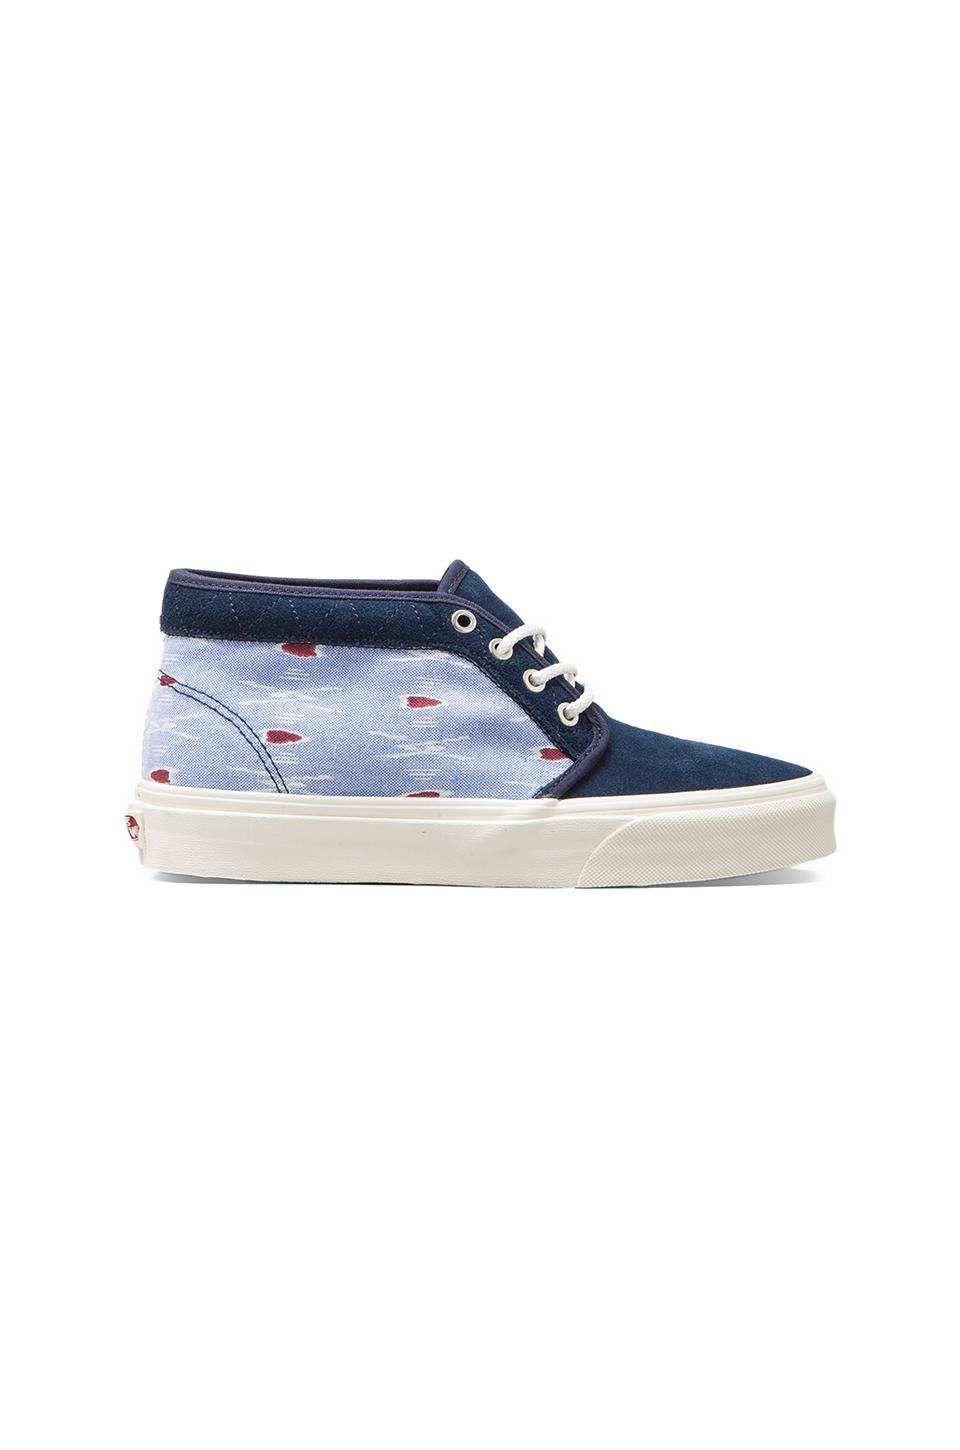 Vans California Chukka Boot Ikat in Dress Blues